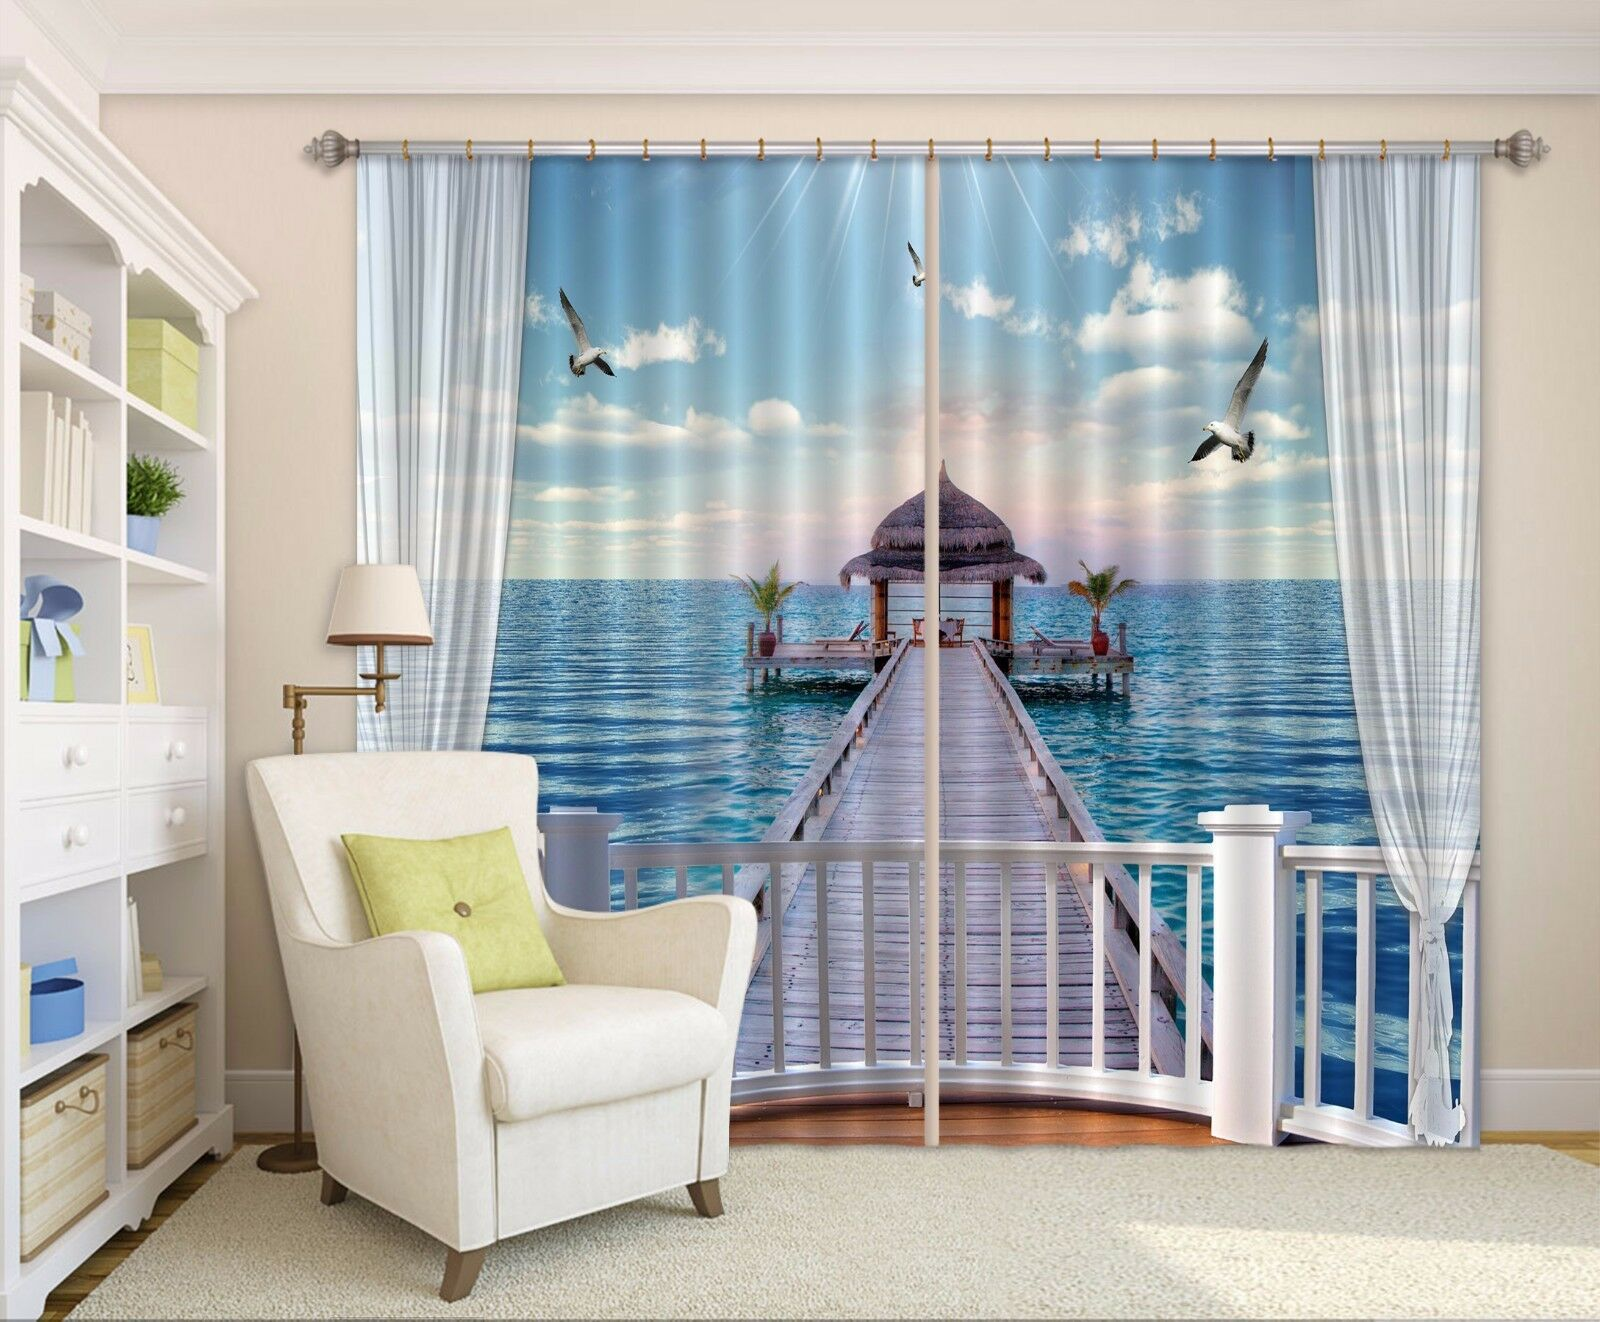 3D Sea Bridge Balcony 6 Blockout Photo Curtain Curtains Drapes Fabric Window CA